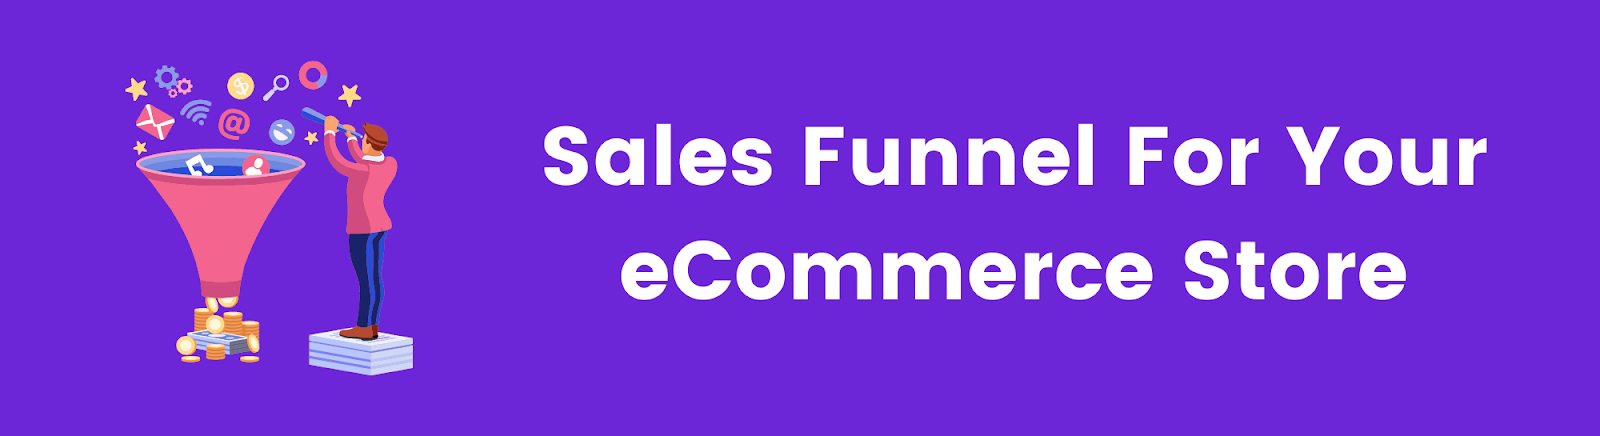 sales funnel for your eCommerce store